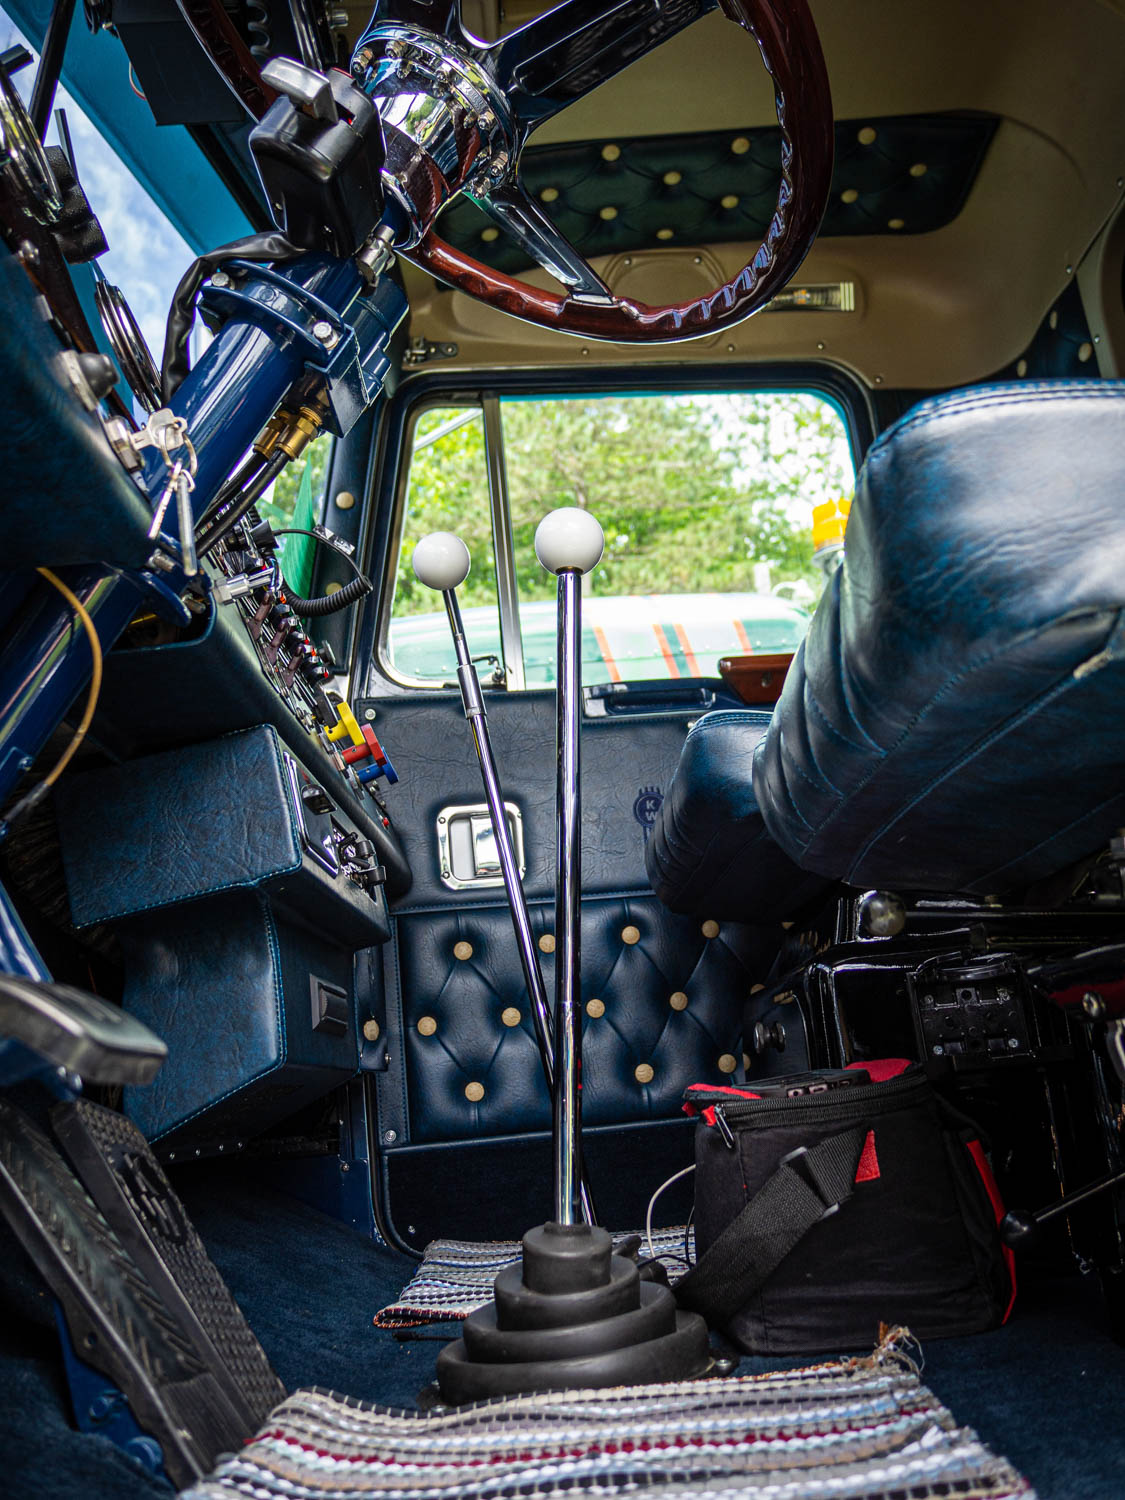 """Many old-school truckers take pride in their """"twin sticks,"""" which shift gears through a main and an auxiliary transmission. More than one veteran of the road grumbled to me or to his cohorts about, essentially, """"kids these days,"""" who """"think they know how to drive"""" when their rig's got an automatic."""